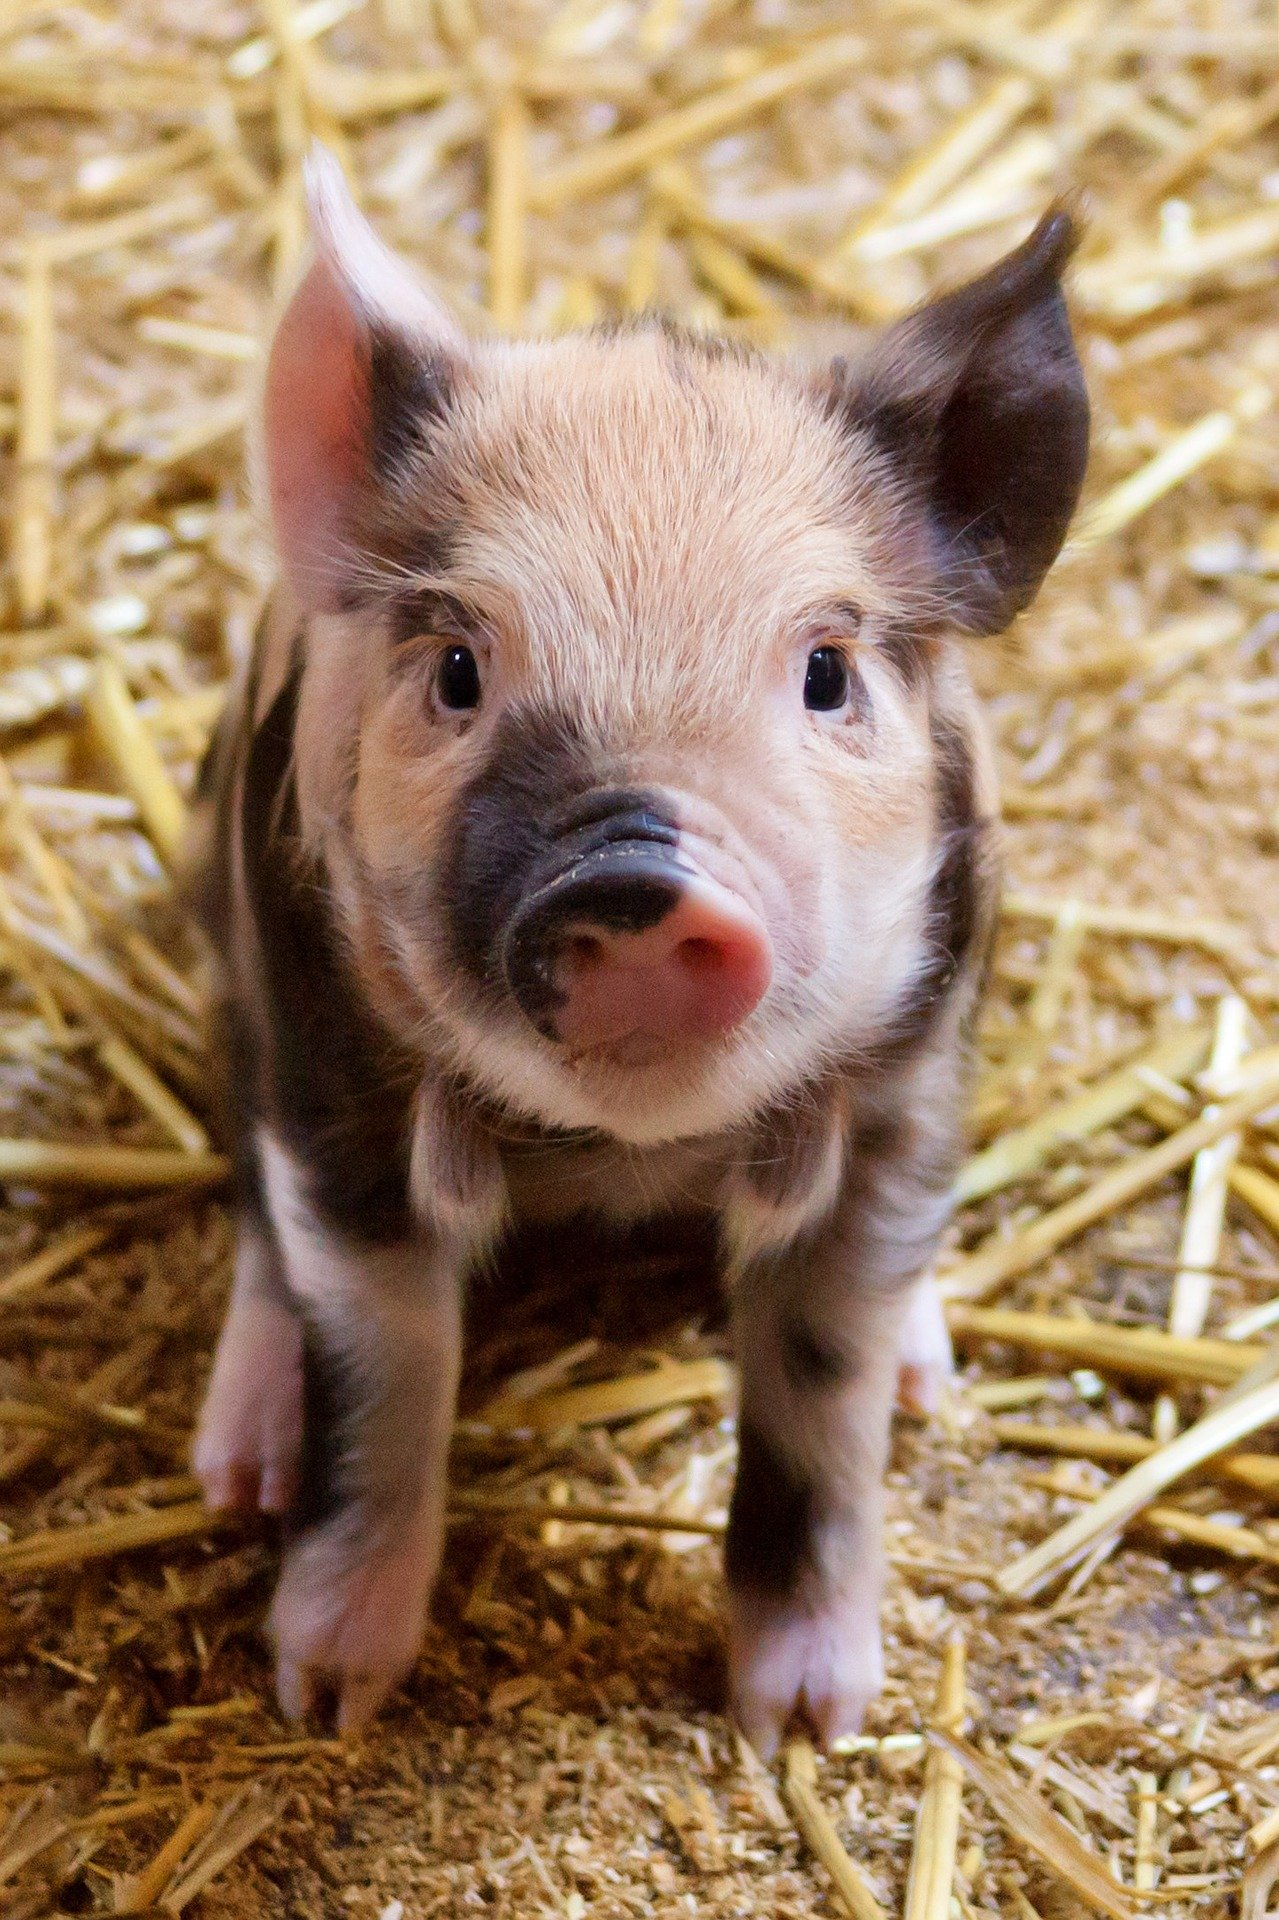 The other farmer offered to take one piglet. | Photo: Pixabay/PublicDomainPictures